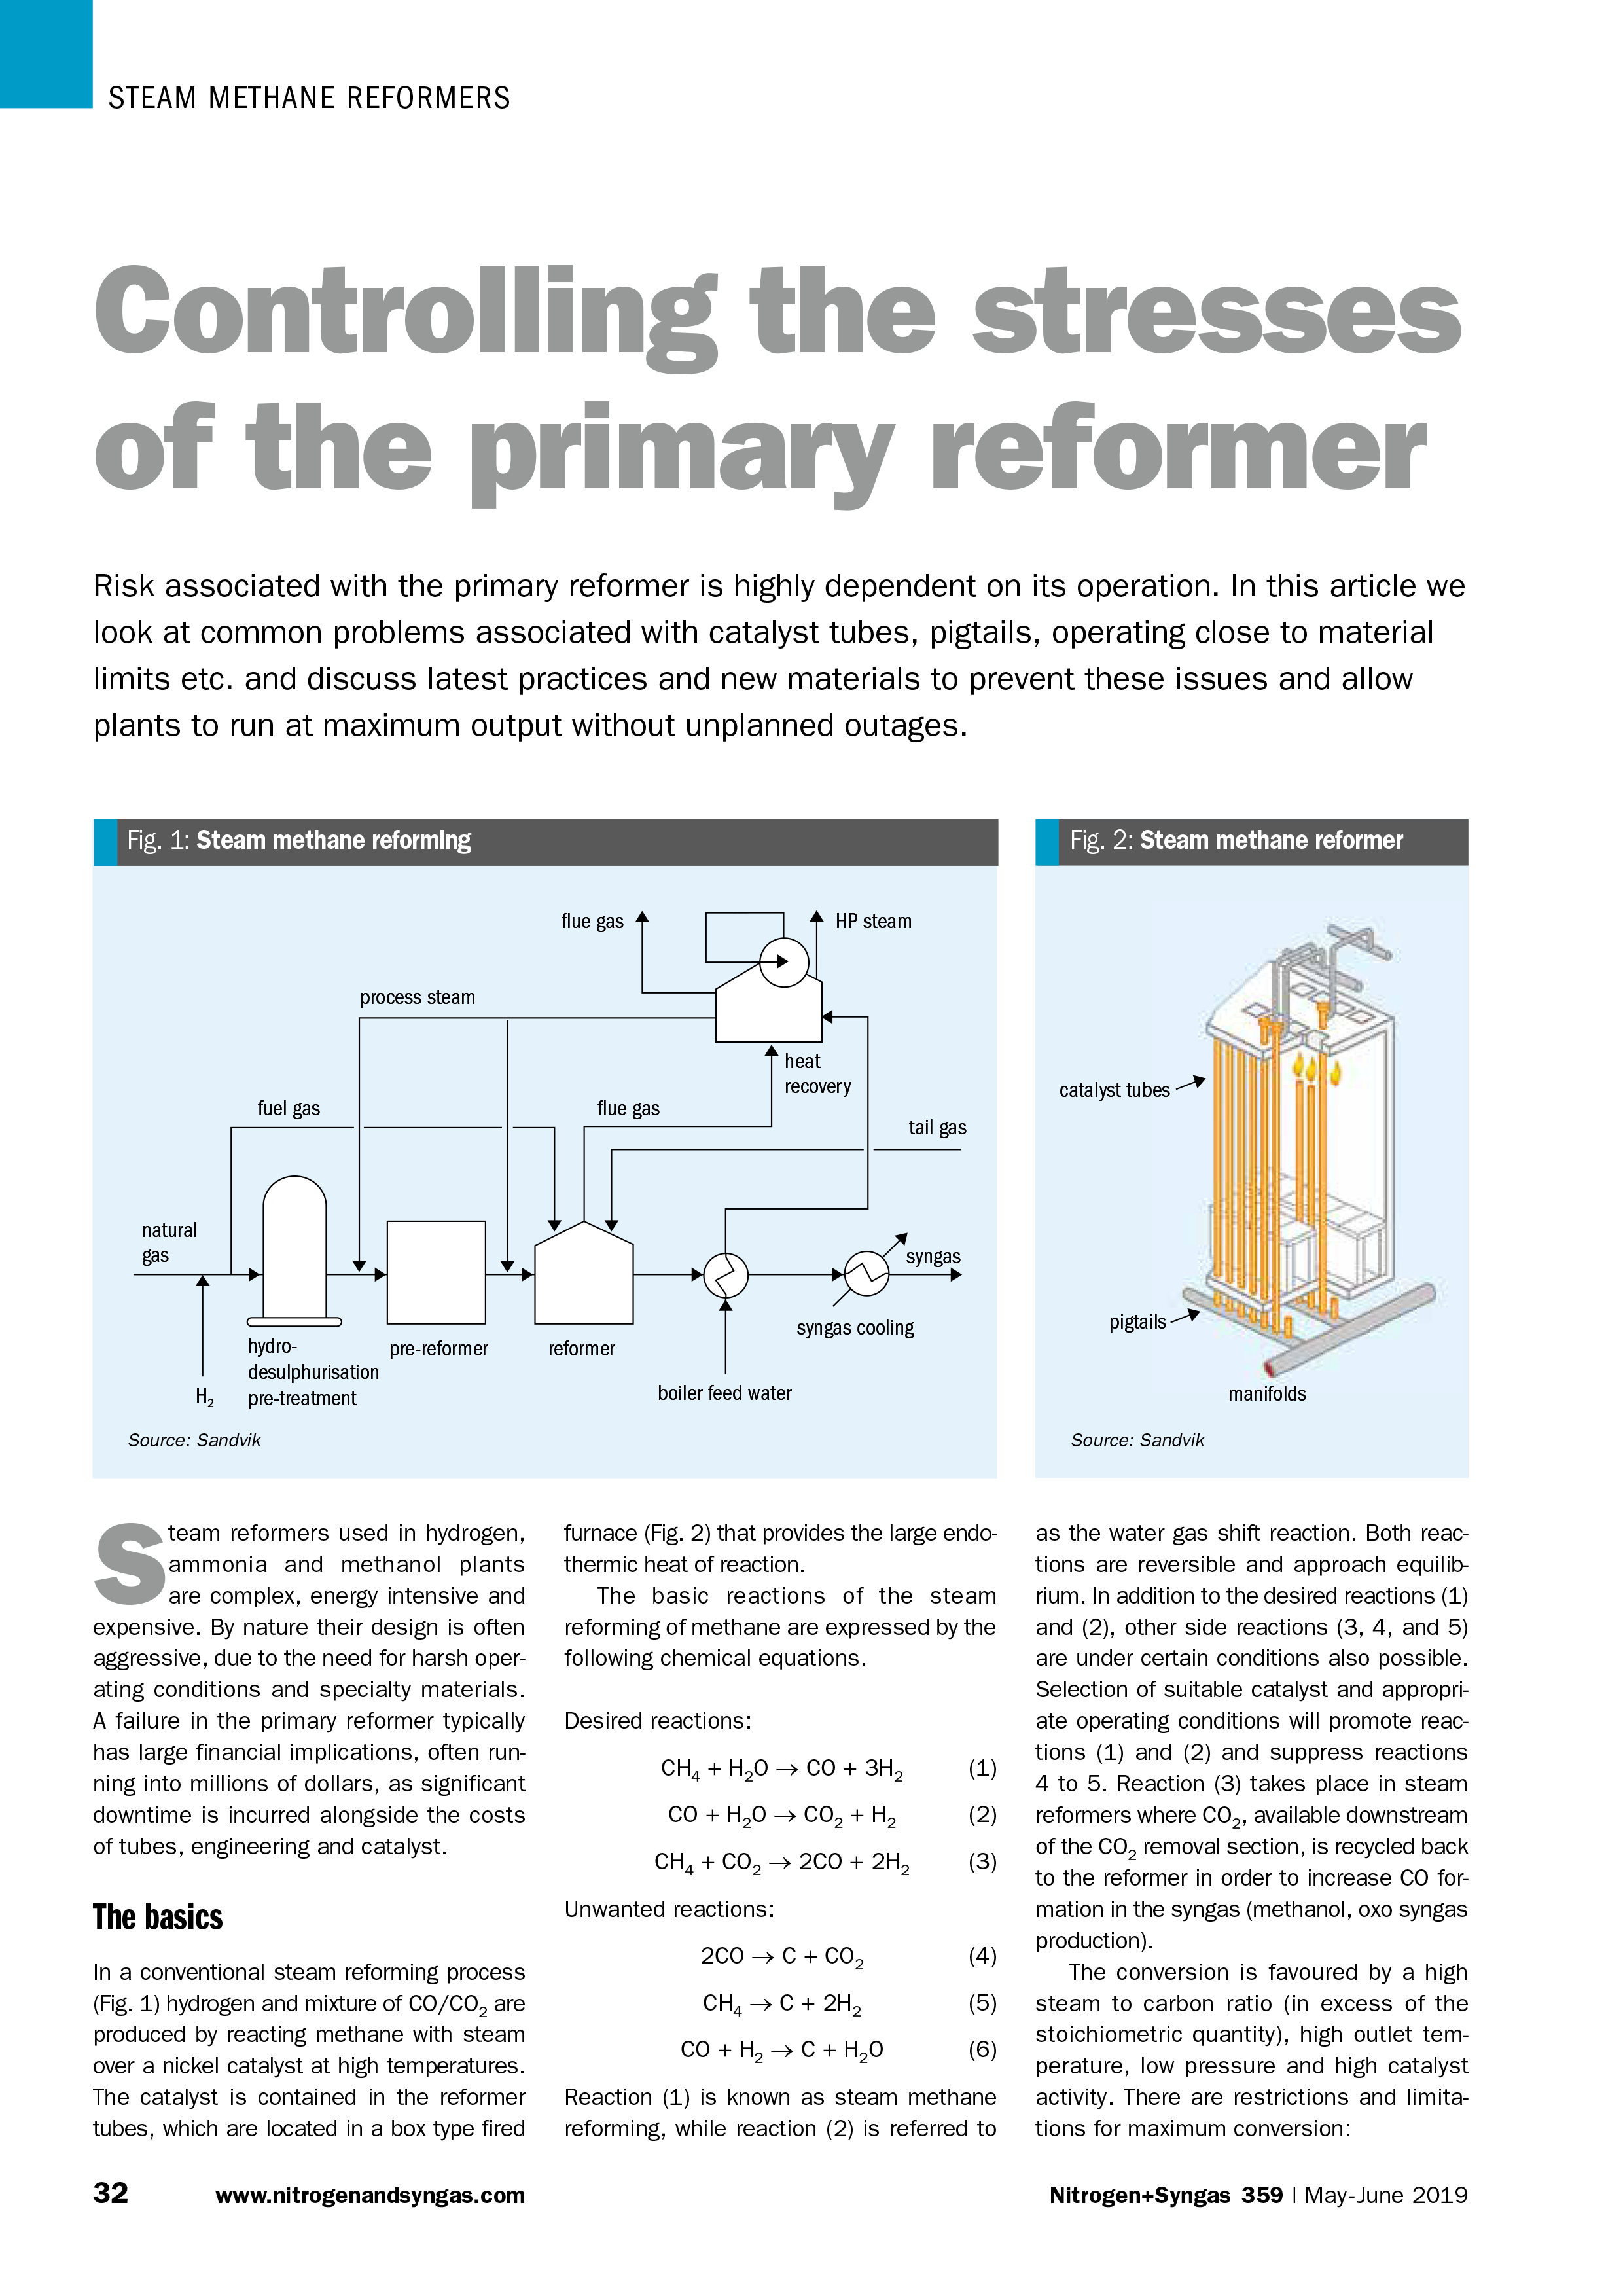 Nitrogen+Syngas Article - Controlling the stresses of the primary reformer